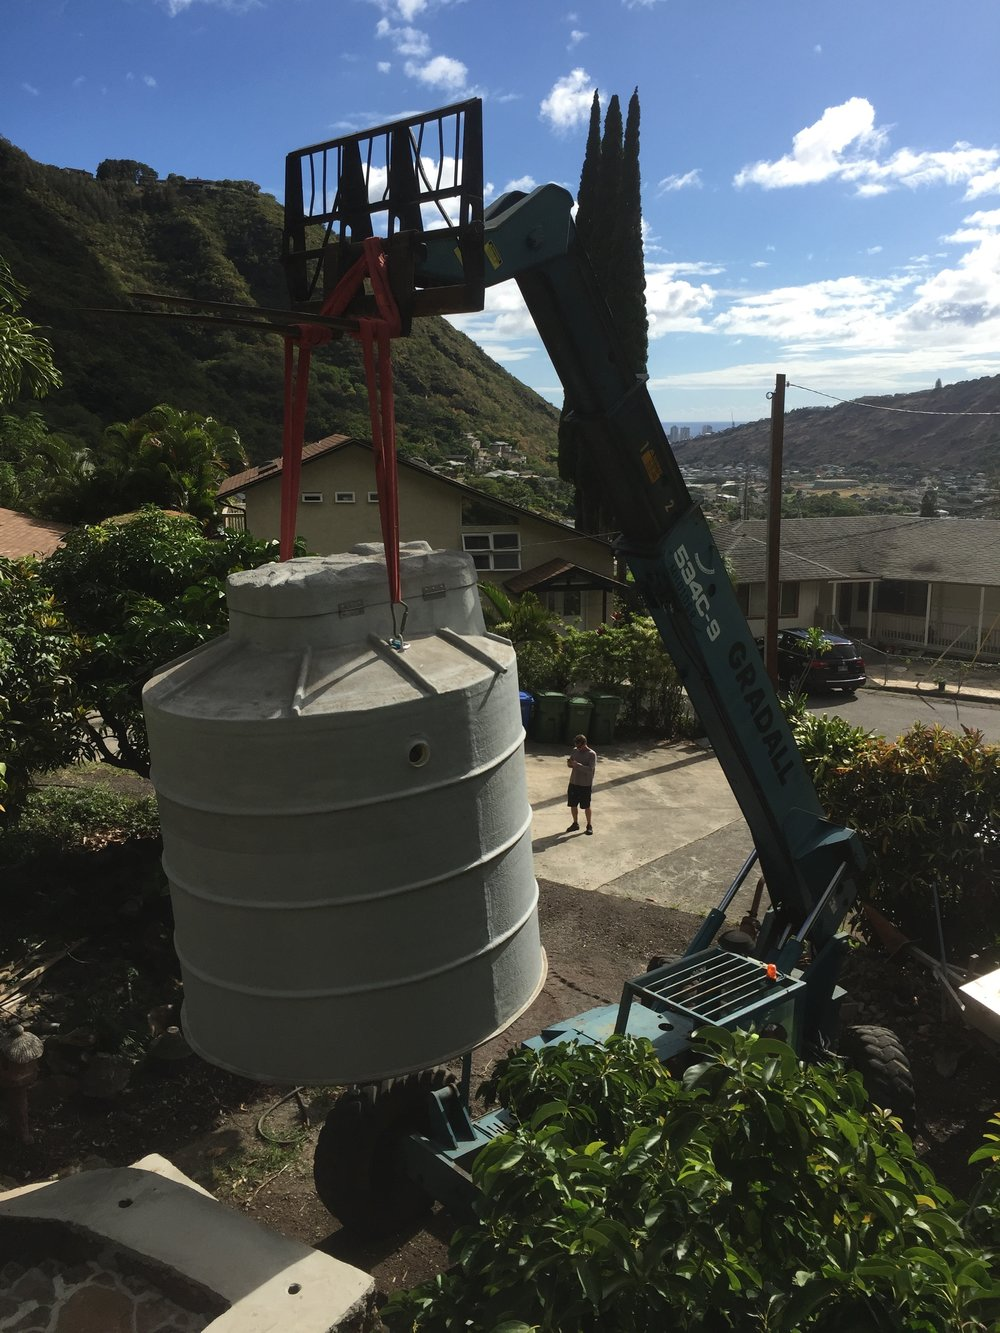 Above: Aerobic Treatment Unit being hoisted into place with a Gradall. Net-zero wastewater is happening right here, right now.